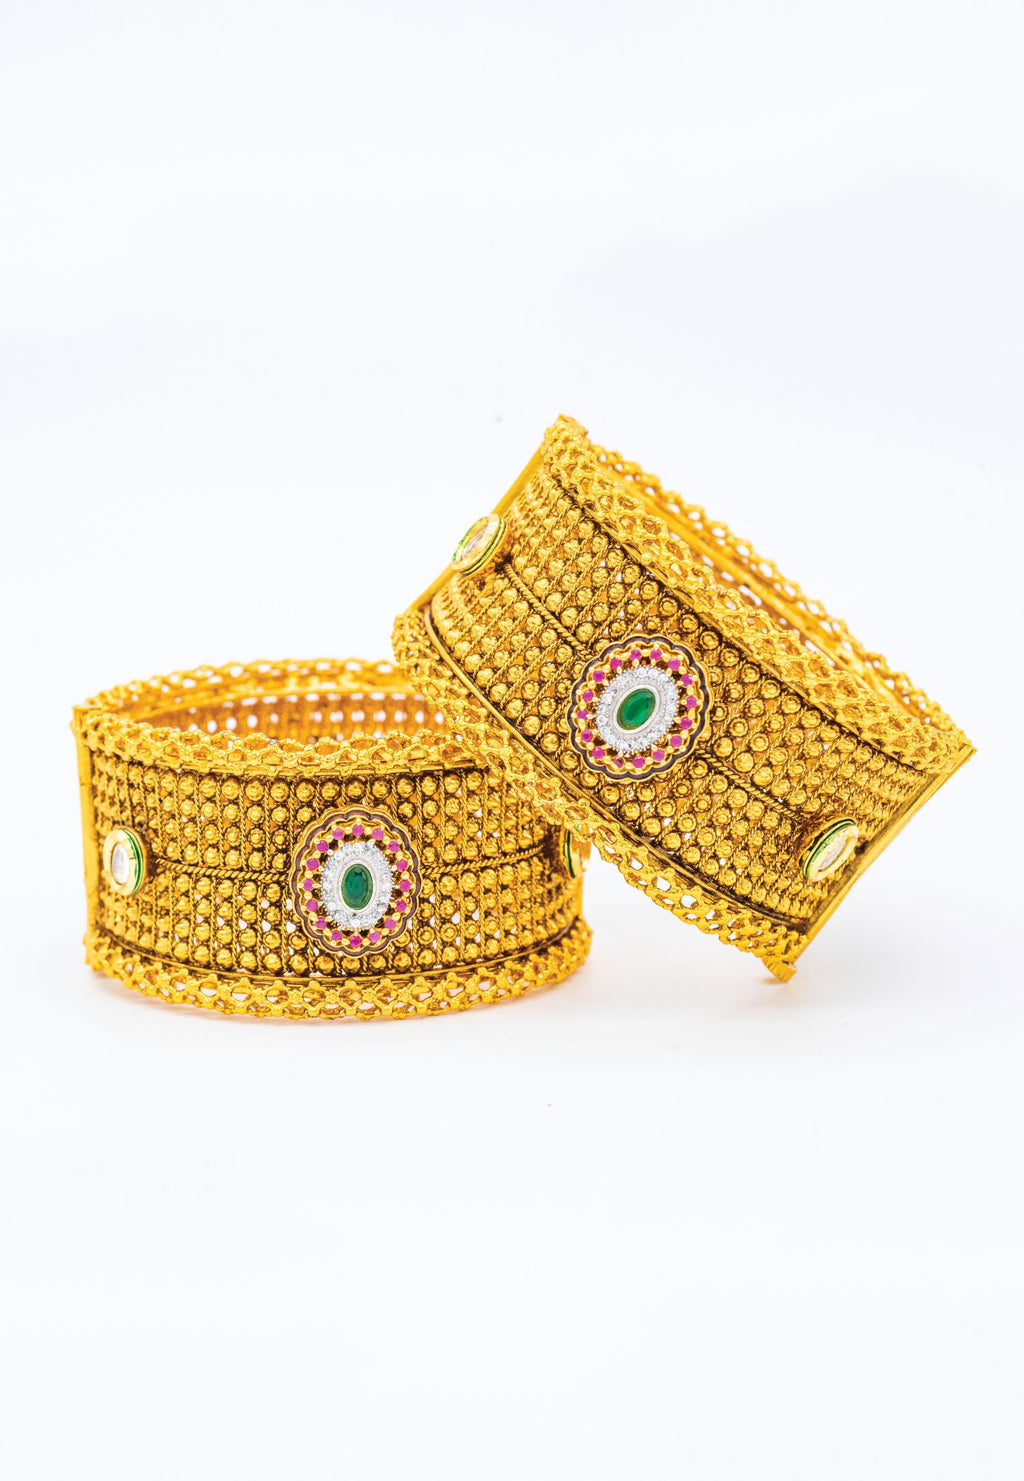 OPPULENT GOLD BANGLES WITH ENAMEL ACCENTS